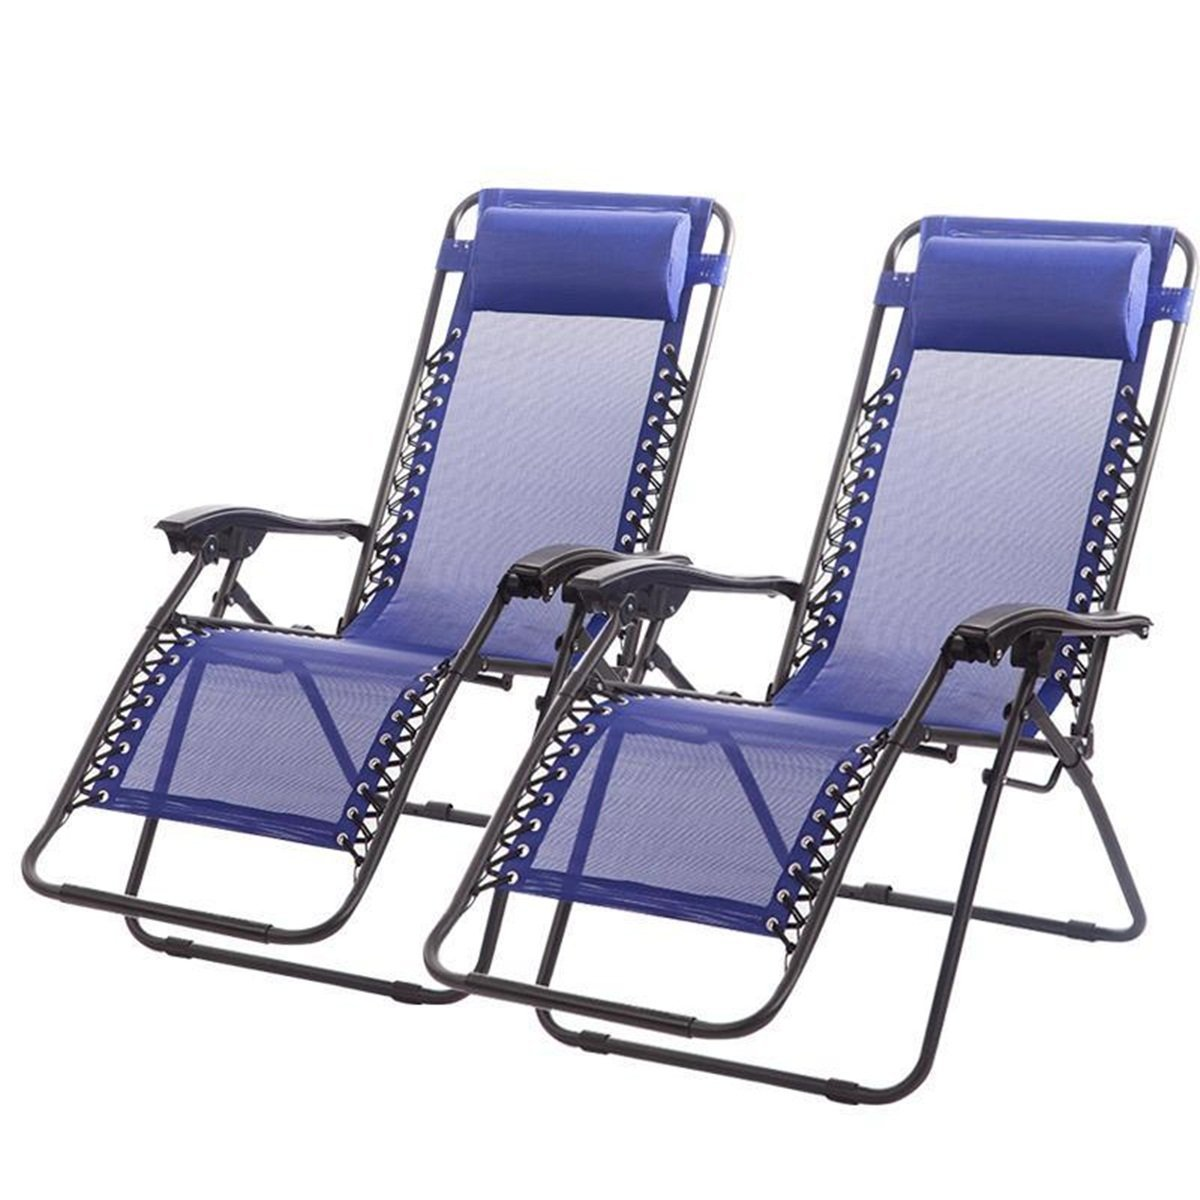 New Premium Zero Gravity Recliner Case Of 2 Lounge Patio Chairs Camping Beach Pool